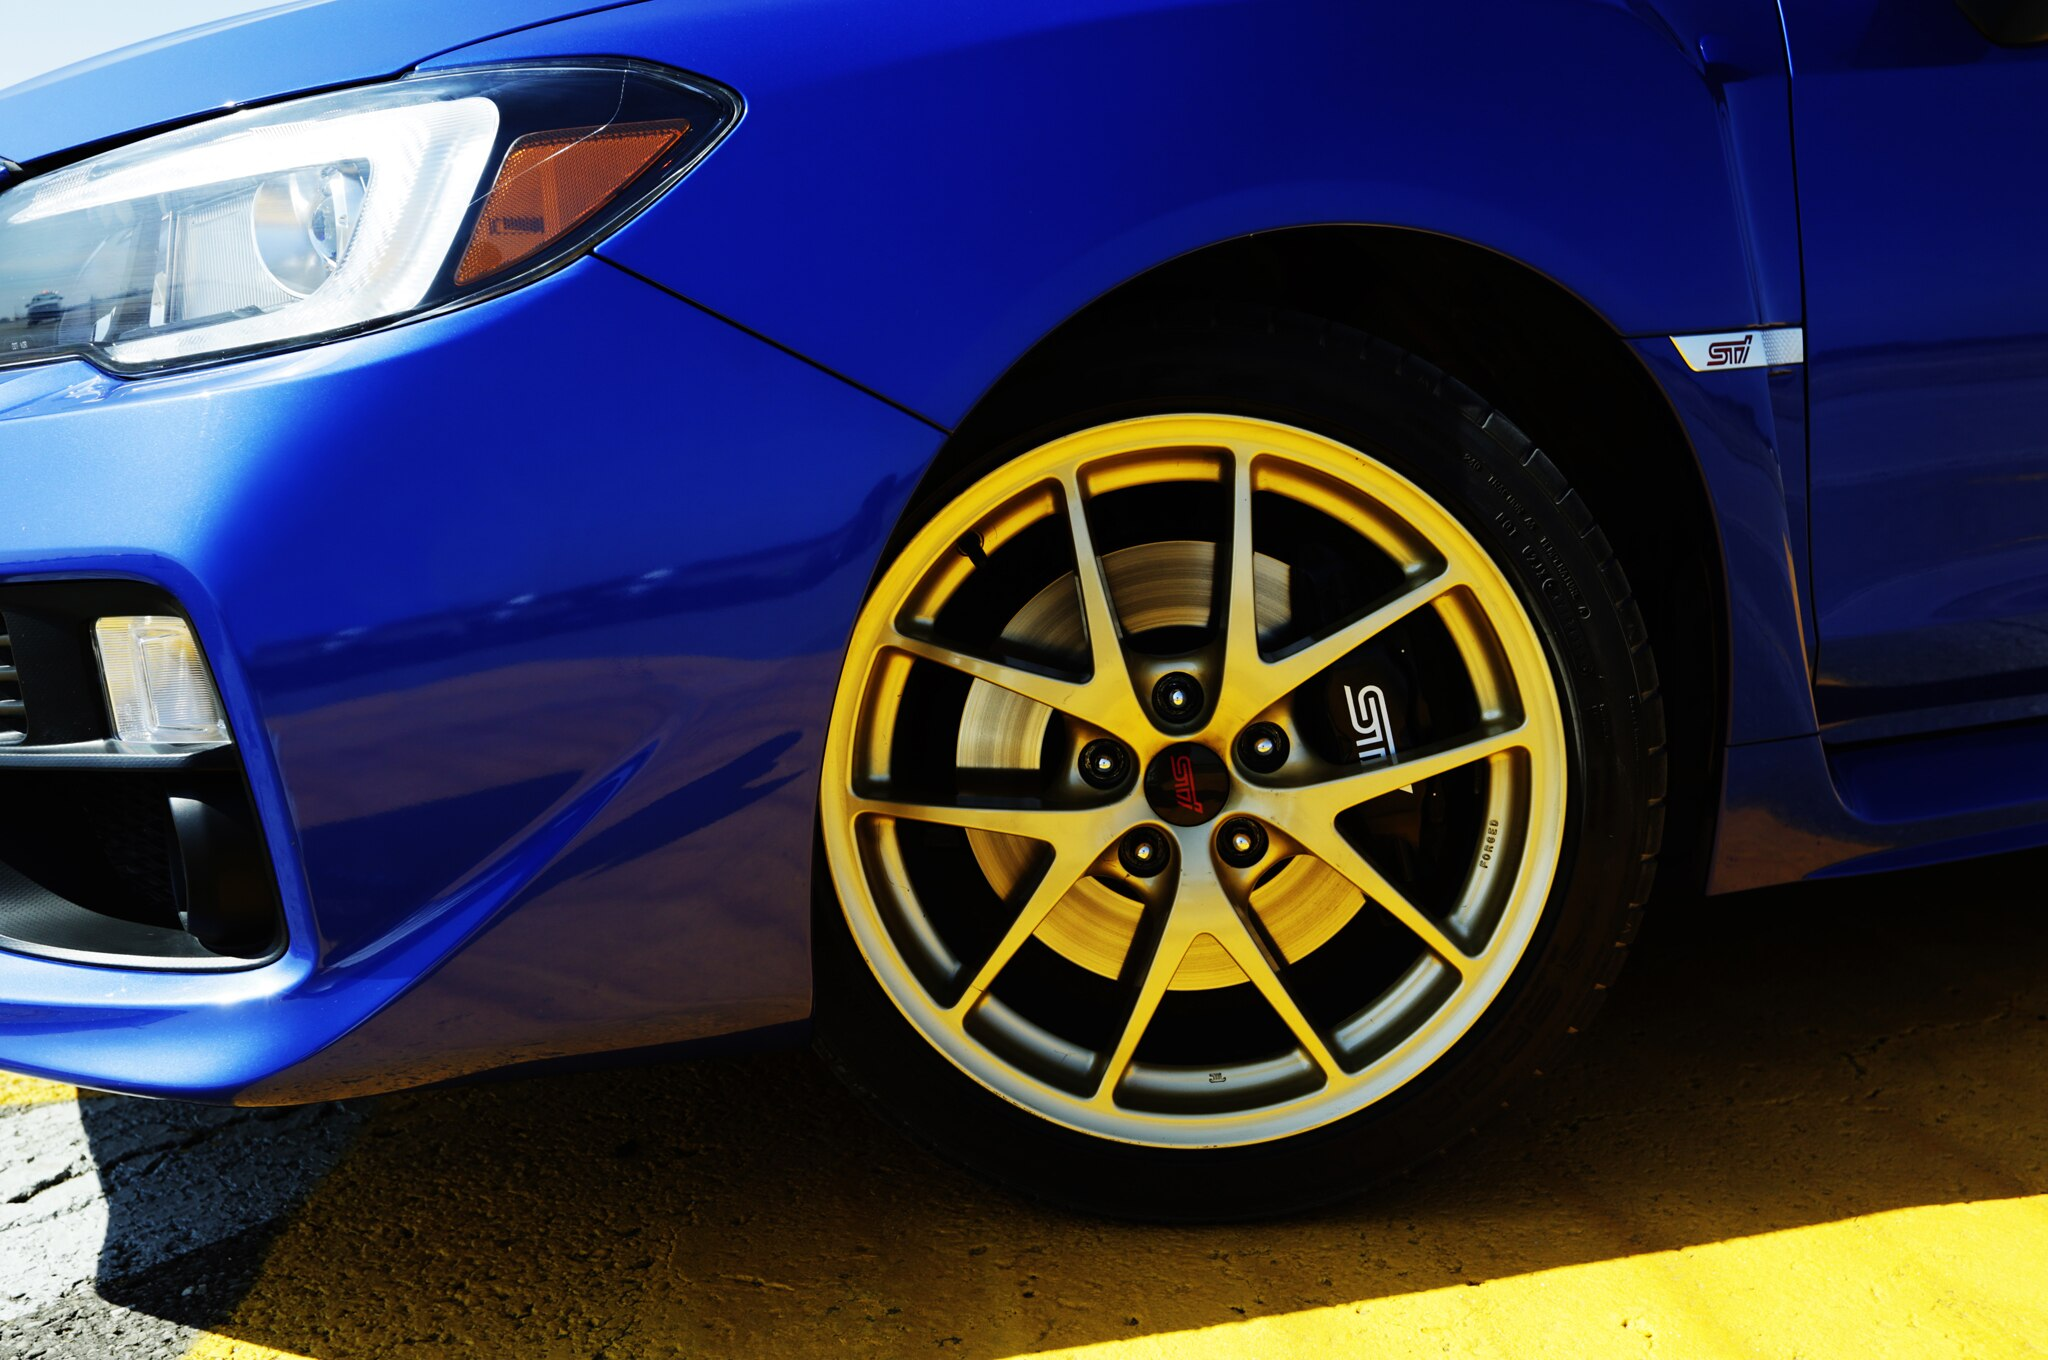 Subaru Crosstrek Sti Wheels >> 2015 Subaru WRX STI: Around the Block - Automobile Magazine